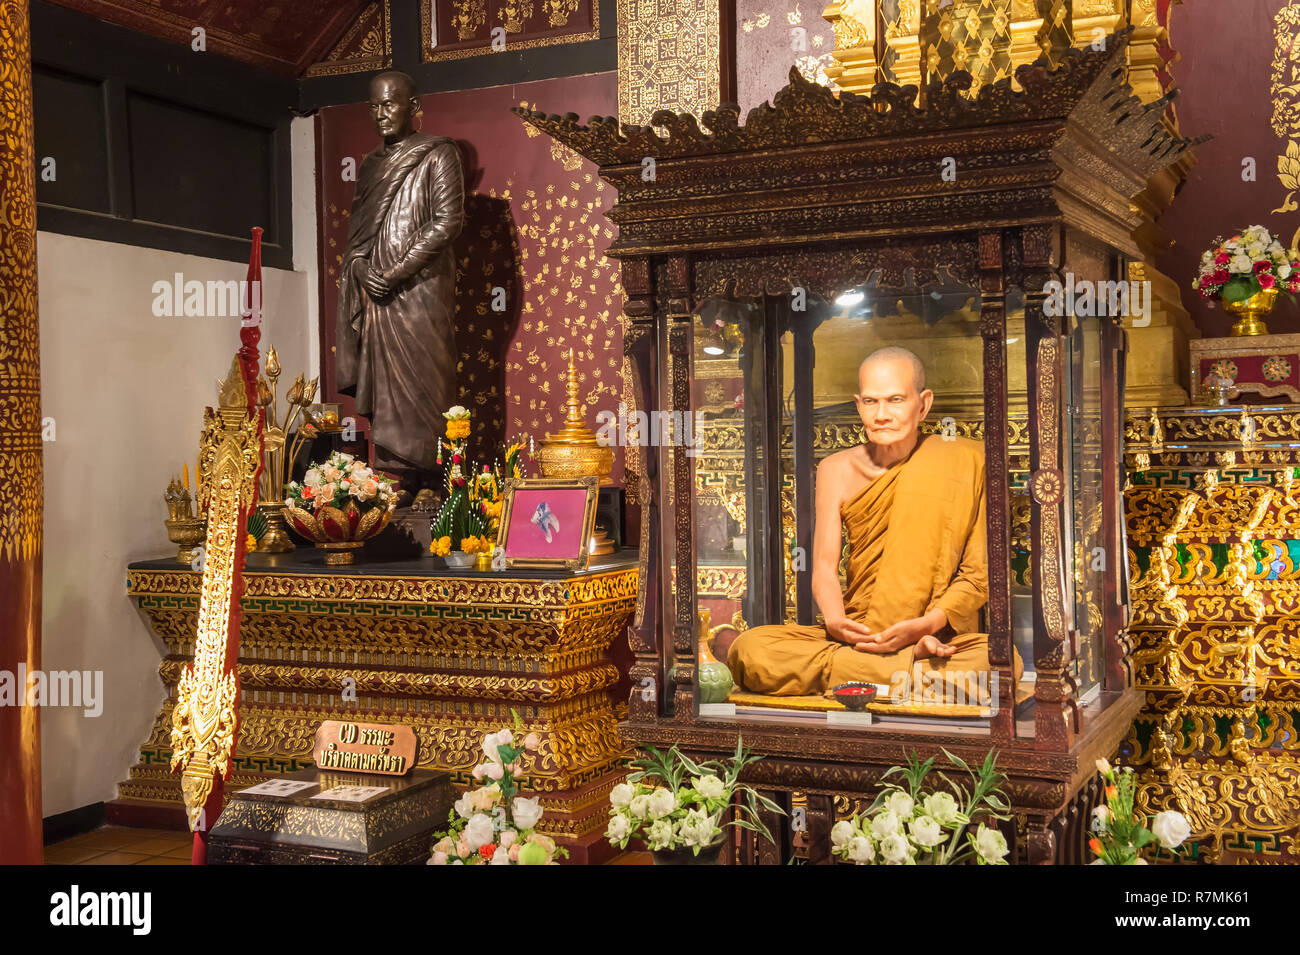 Life-like statue of a revered monk, Wat Chedi Luang, Chiang Mai, Thailand - Stock Image